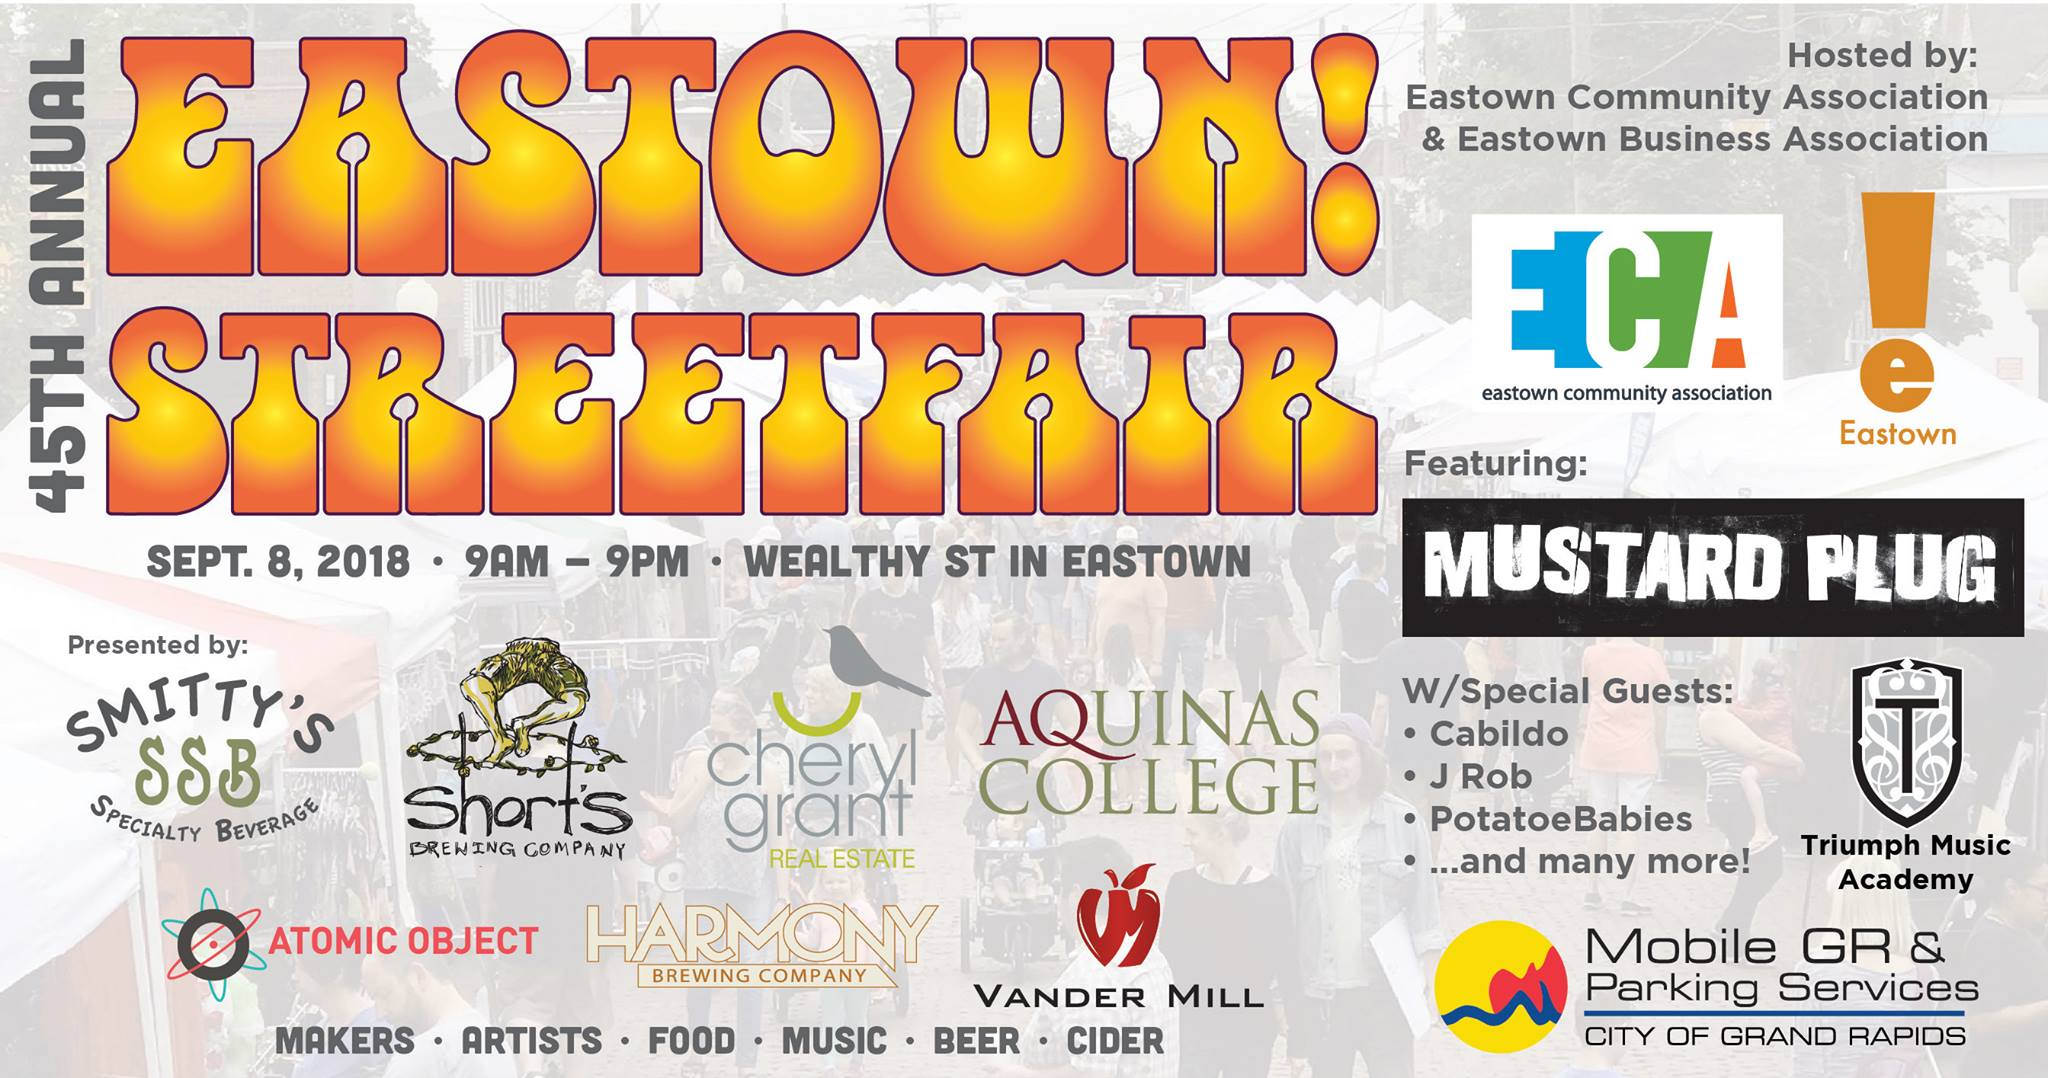 The Eastown Community Association and Eastown Business Association are hosting the 45th Annual Eastown Streetfair on Saturday, September 8, 2018 from 9am to 9pm (Beer tent open until 10pm) This outdoor festival will take place along Wealthy Street between Giddings Avenue and Lake Drive and includes the first block of Ethel Avenue and the Wealthy St. Hub Lot. This annual event is a family-friendly celebration of arts, crafts, food, music, and the Eastown neighborhood; one of Grand Rapids' most eclectic districts!  Live Music Featuring: Mustard Plug, Cabildo, J-Rob, Potato Babies and MORE